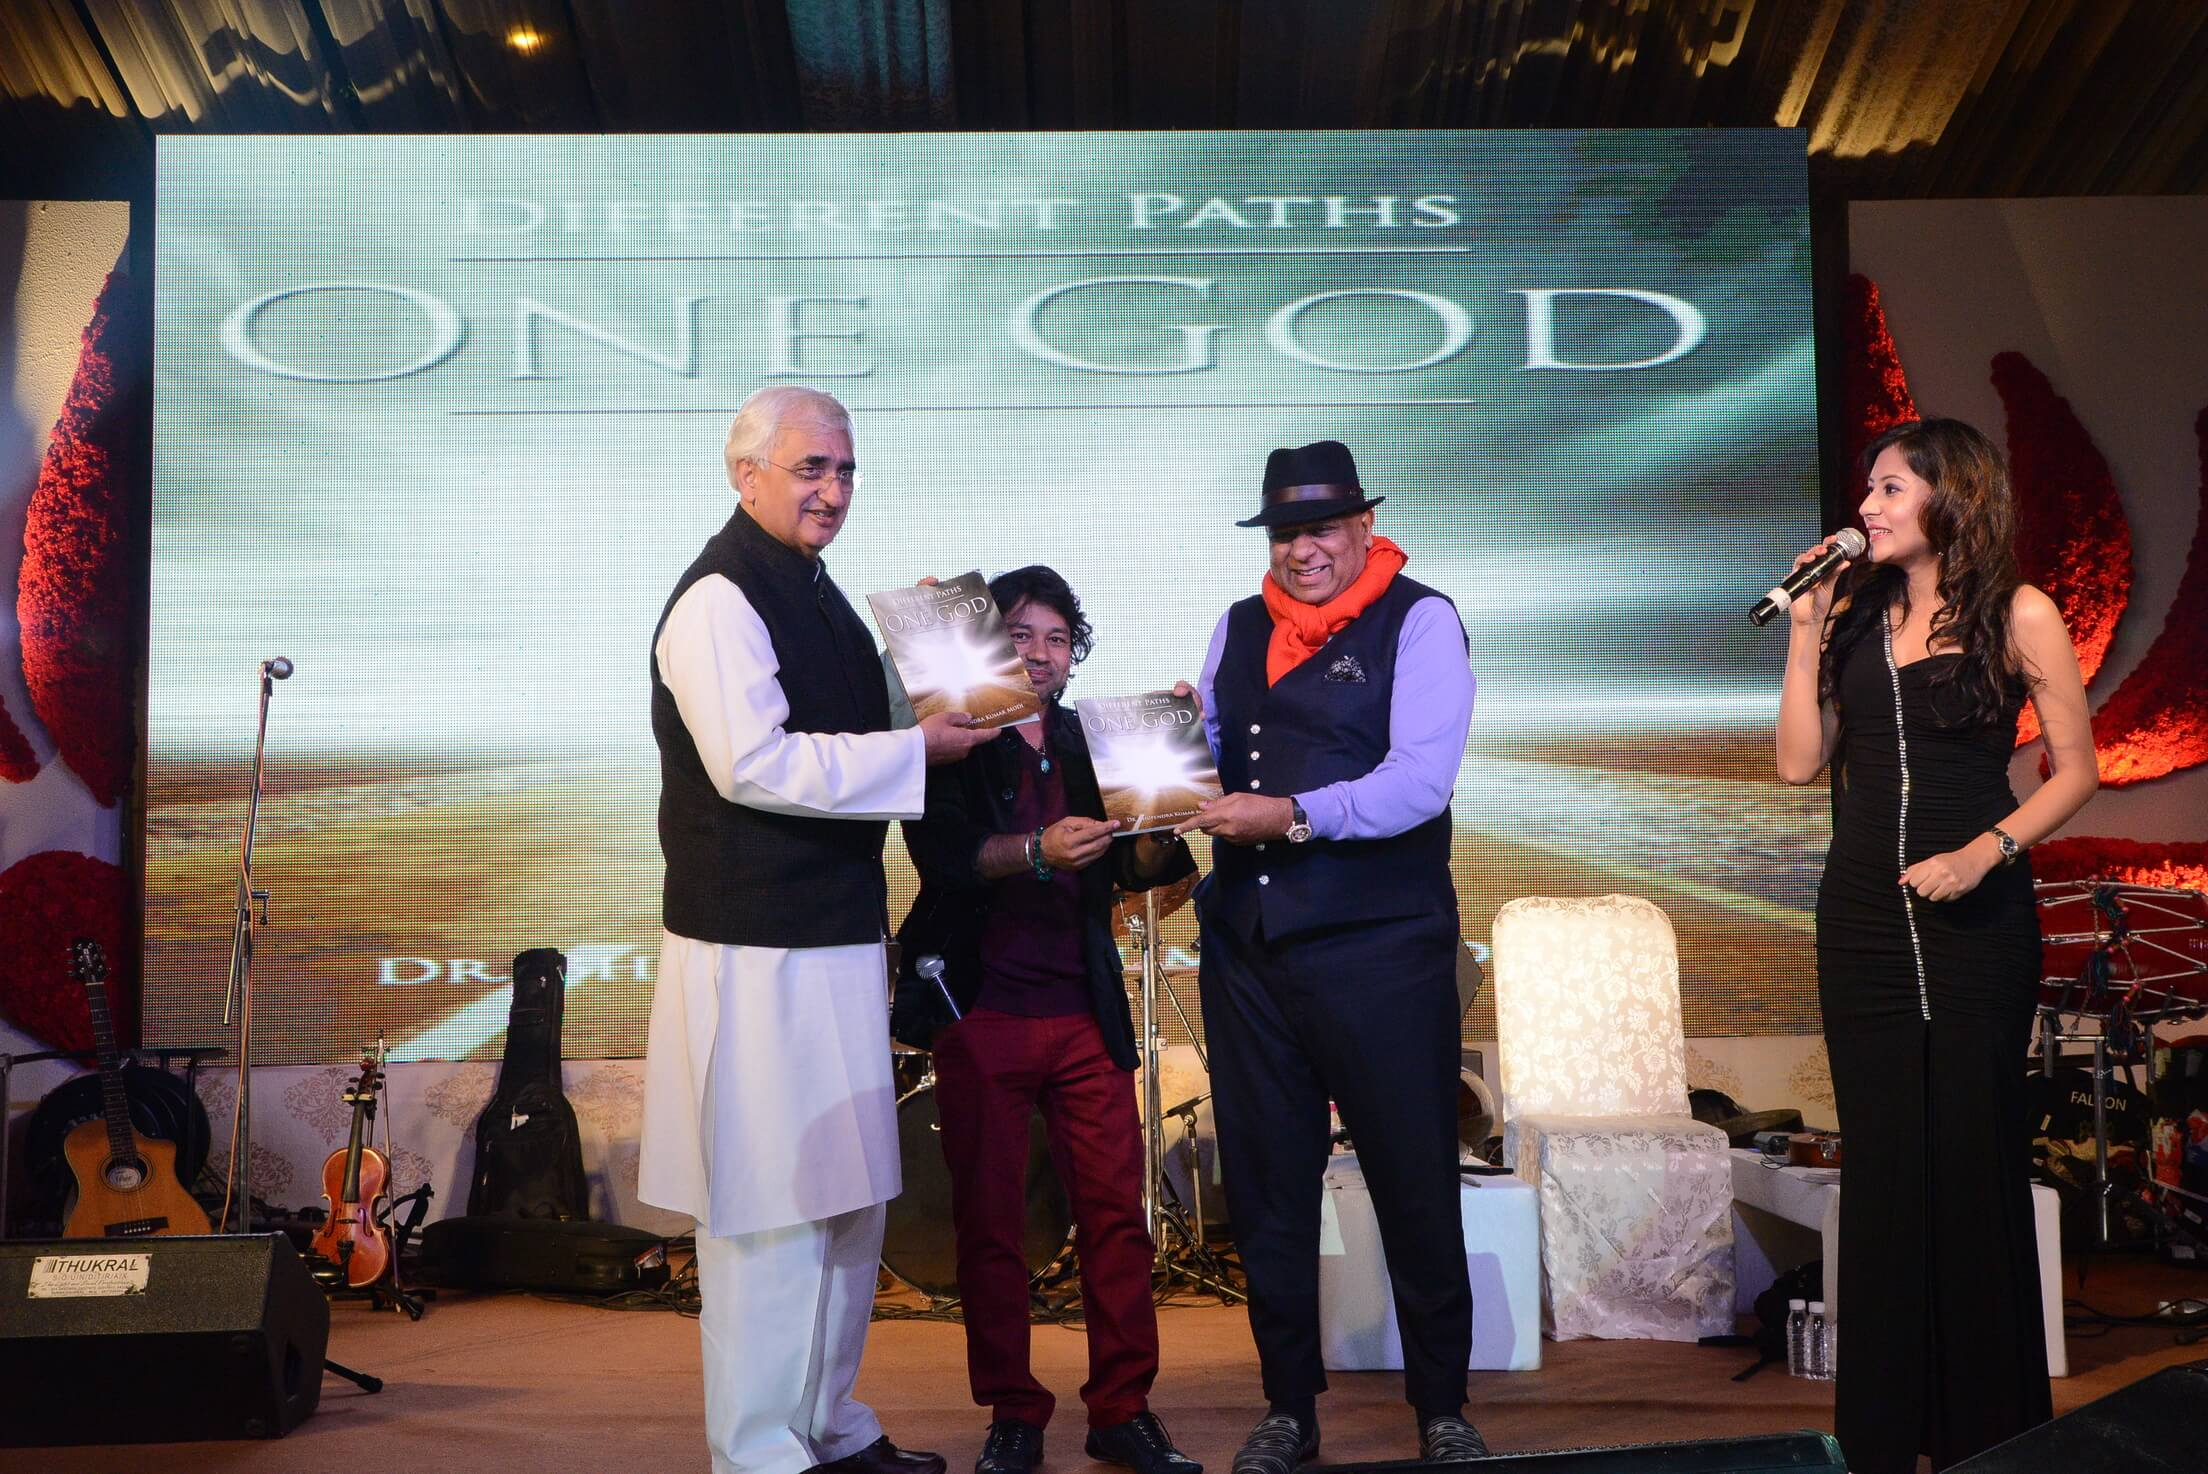 Dr. M Book One God launched by Salman Khurshid Former Indian Union Minister for External Affairs and Kailash Kher